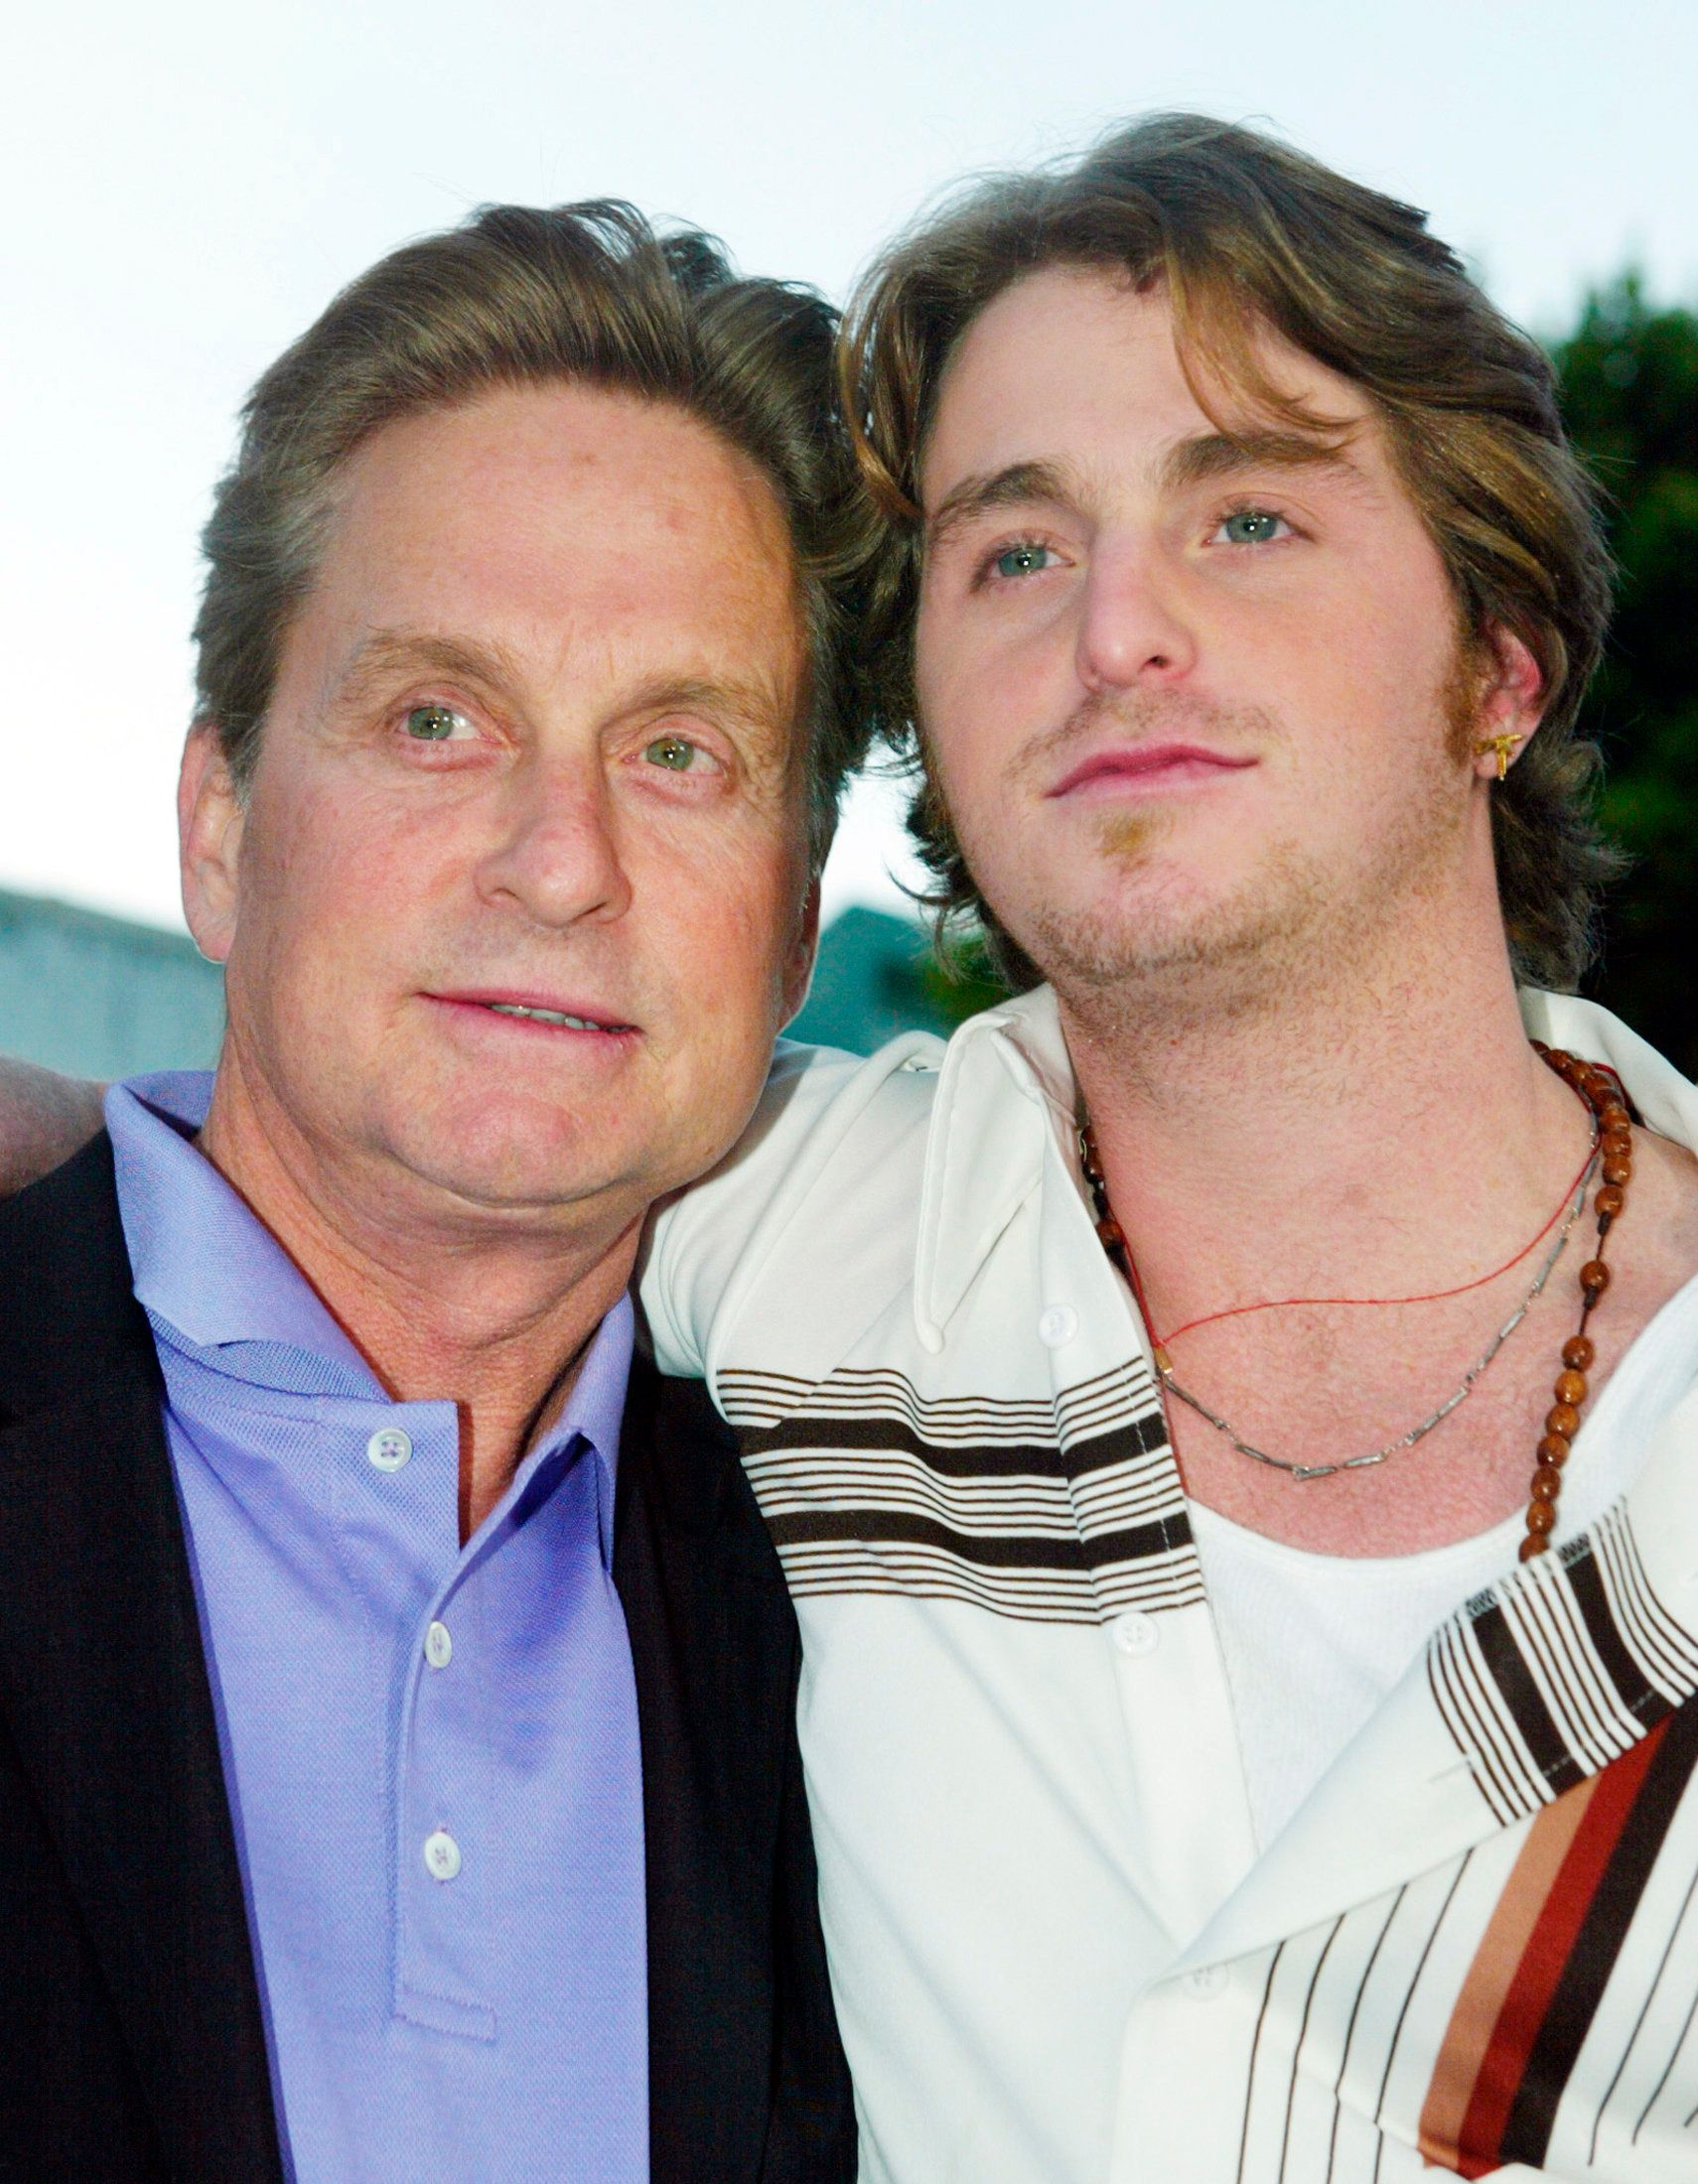 """Actor Michael Douglas (L) and his son Cameron pose as they arrive for the premiere of their new film """"It Runs In The Family"""" in this file photo taken in Los Angeles, California, April 7, 2003. Cameron Douglas, the son of Oscar-winning actor Michael Douglas, has been arrested on drug charges, media reports and authorities said on Monday.       REUTERS/Fred Prouser/Files   (UNITED STATES ENTERTAINMENT CRIME LAW SOCIETY)"""